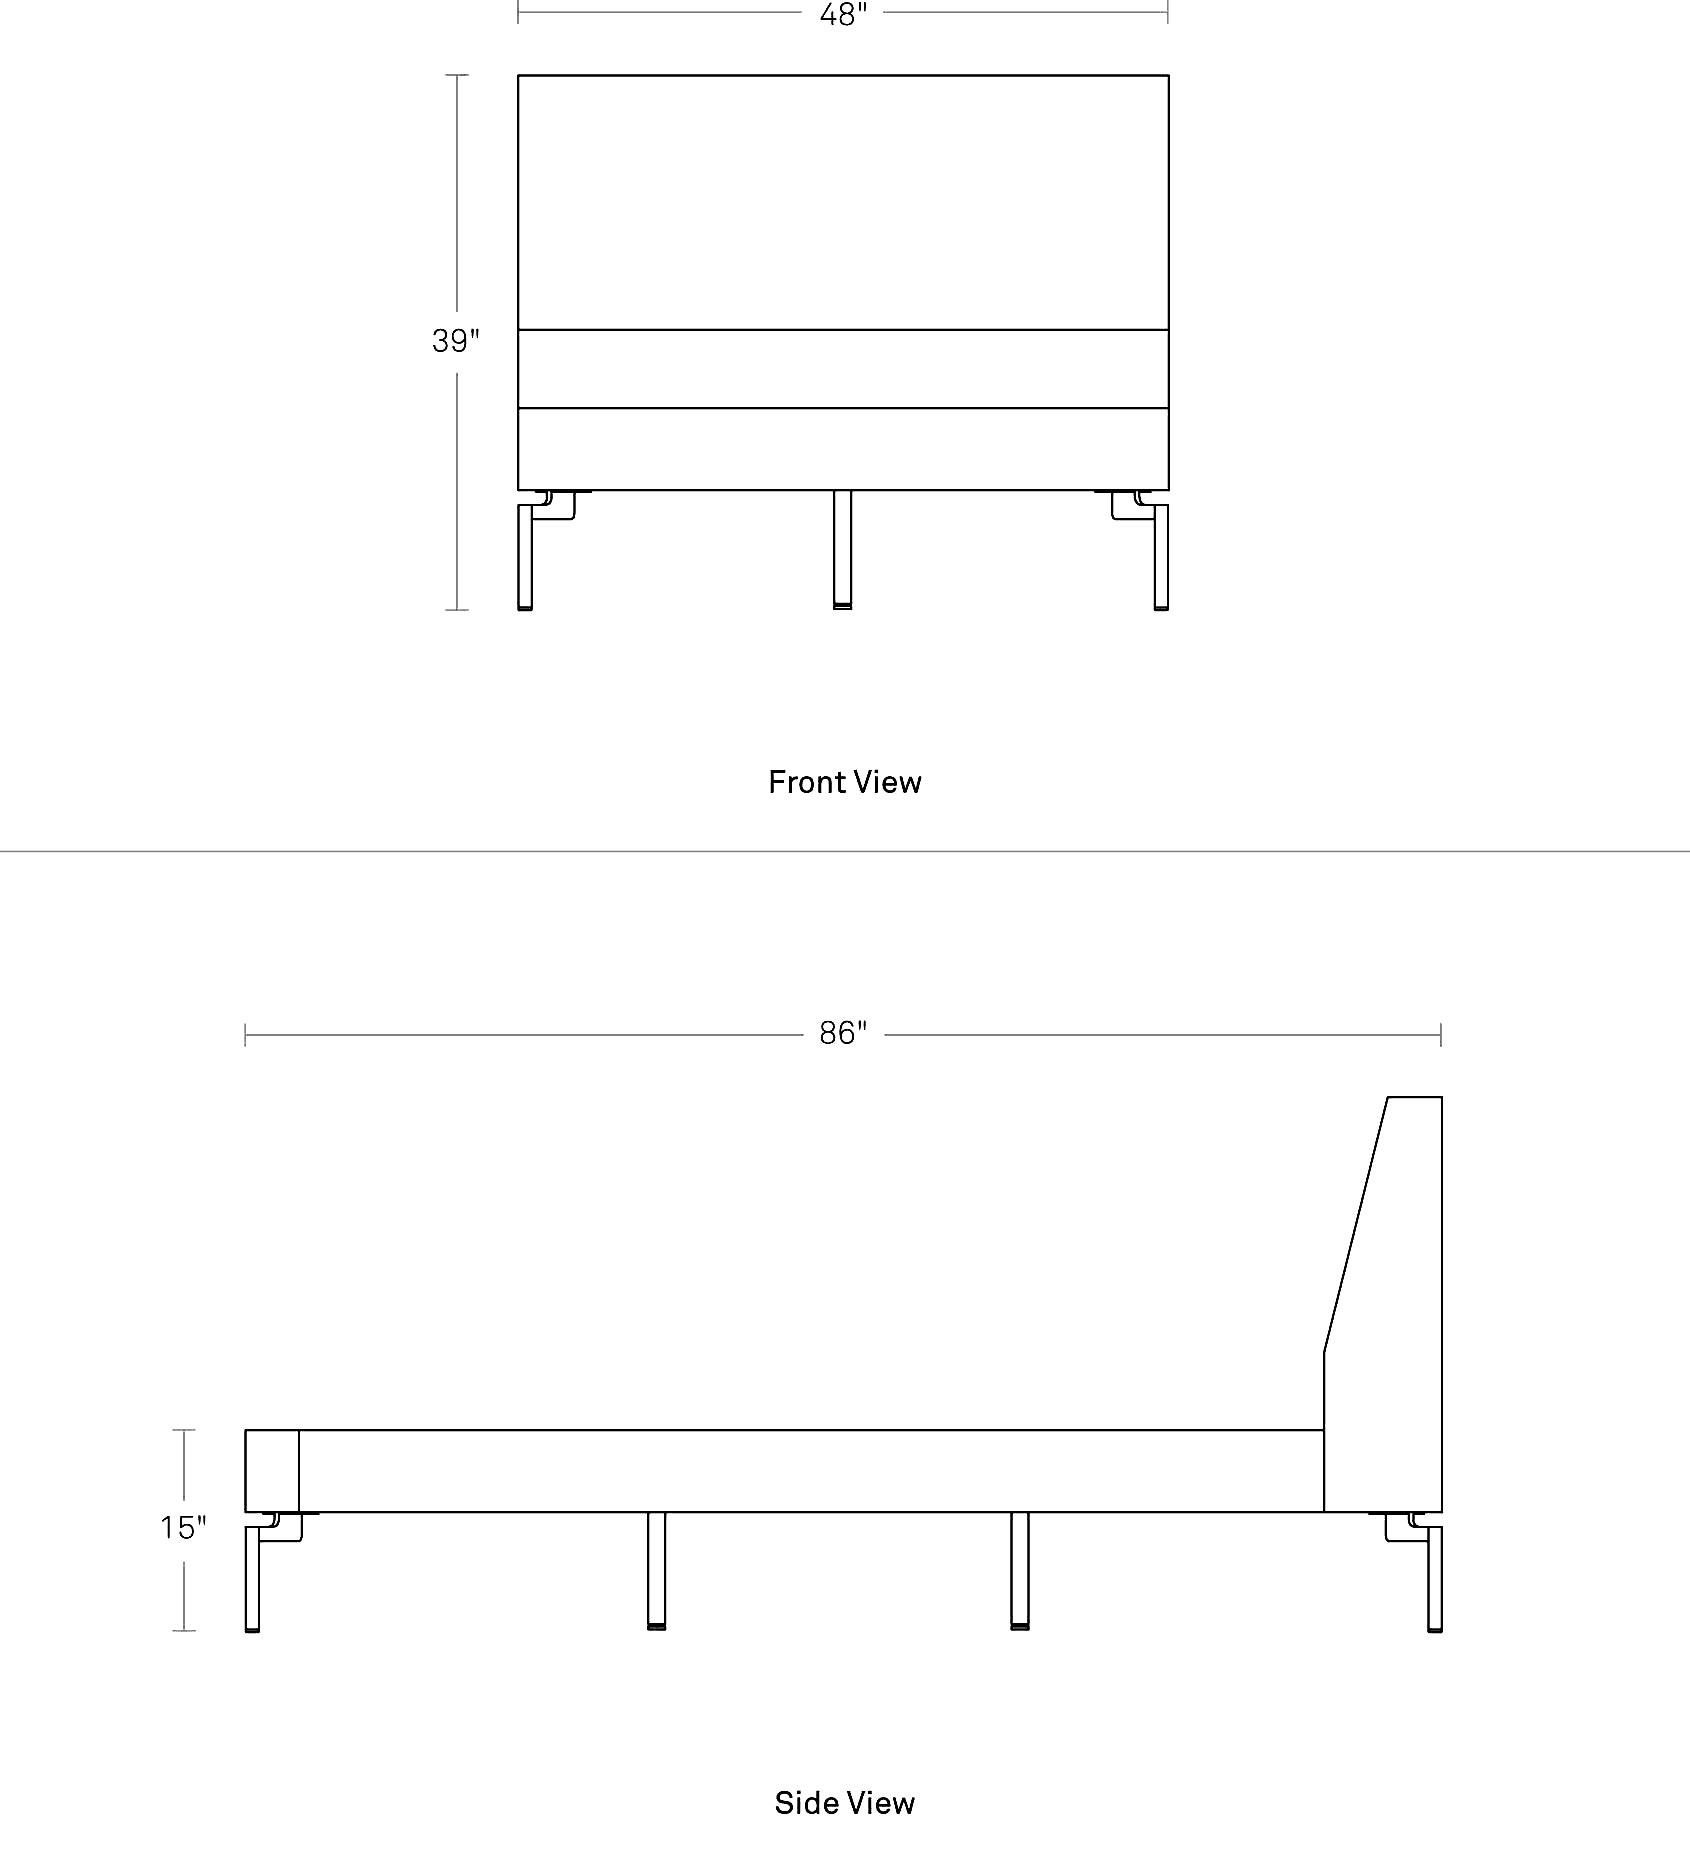 Upholstered Twin Bed - New Standard Twin Bed